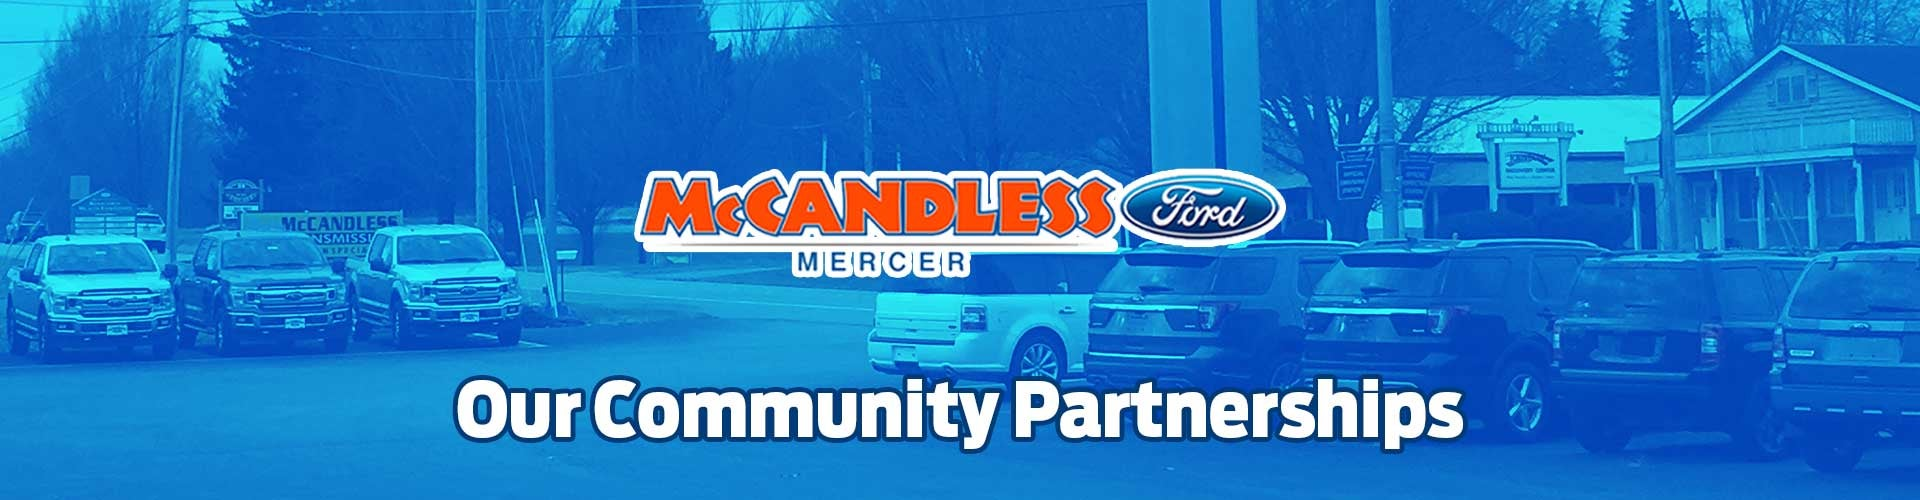 our community partnerships bill mccandless ford bill mccandless ford